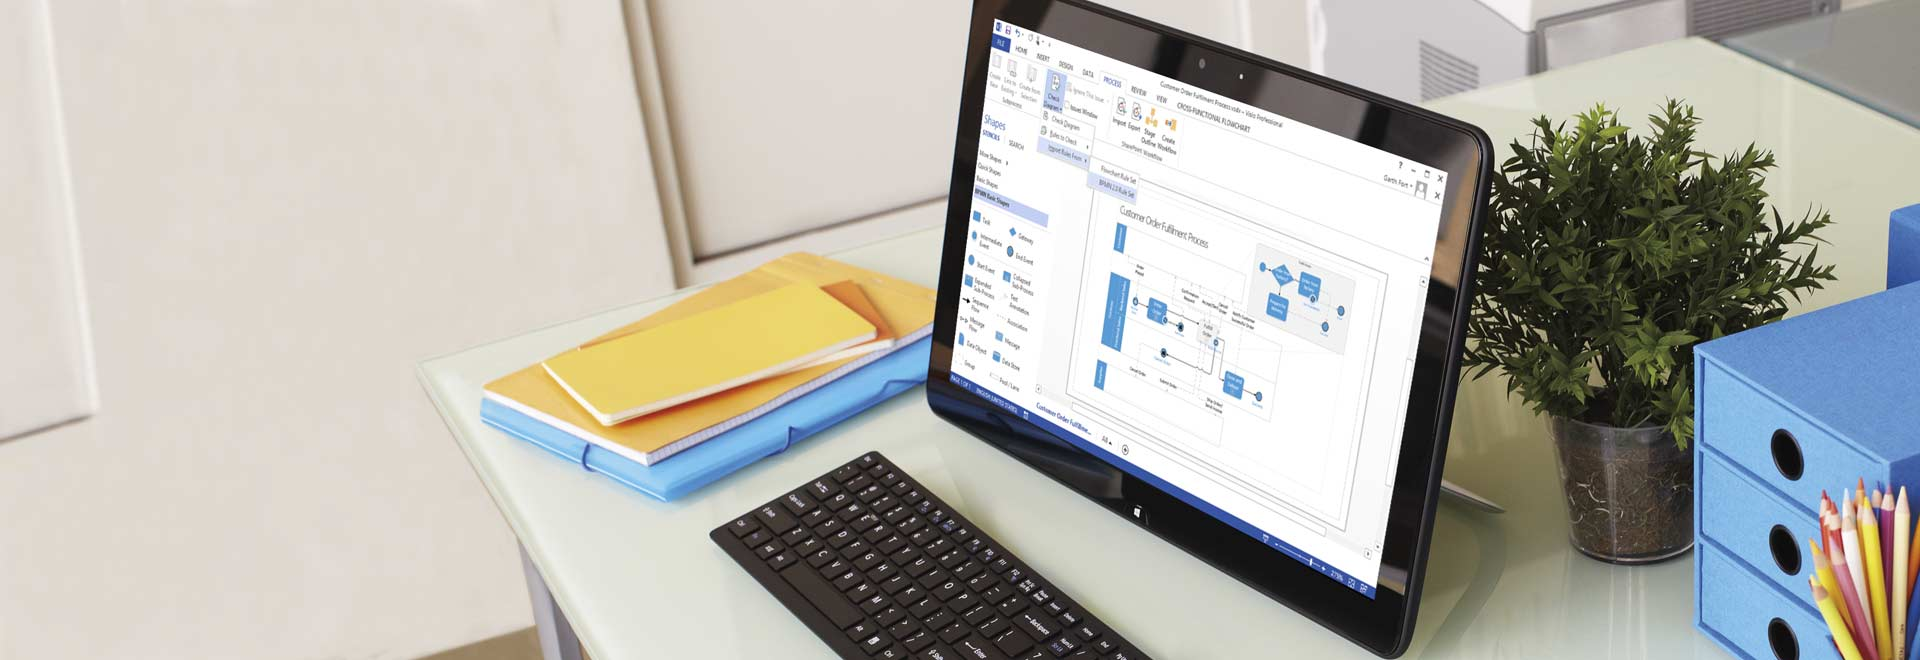 Team flow chart and diagram maker microsoft visio professional a desk with a tablet computer displaying a process diagram in visio professional 2016 ccuart Image collections